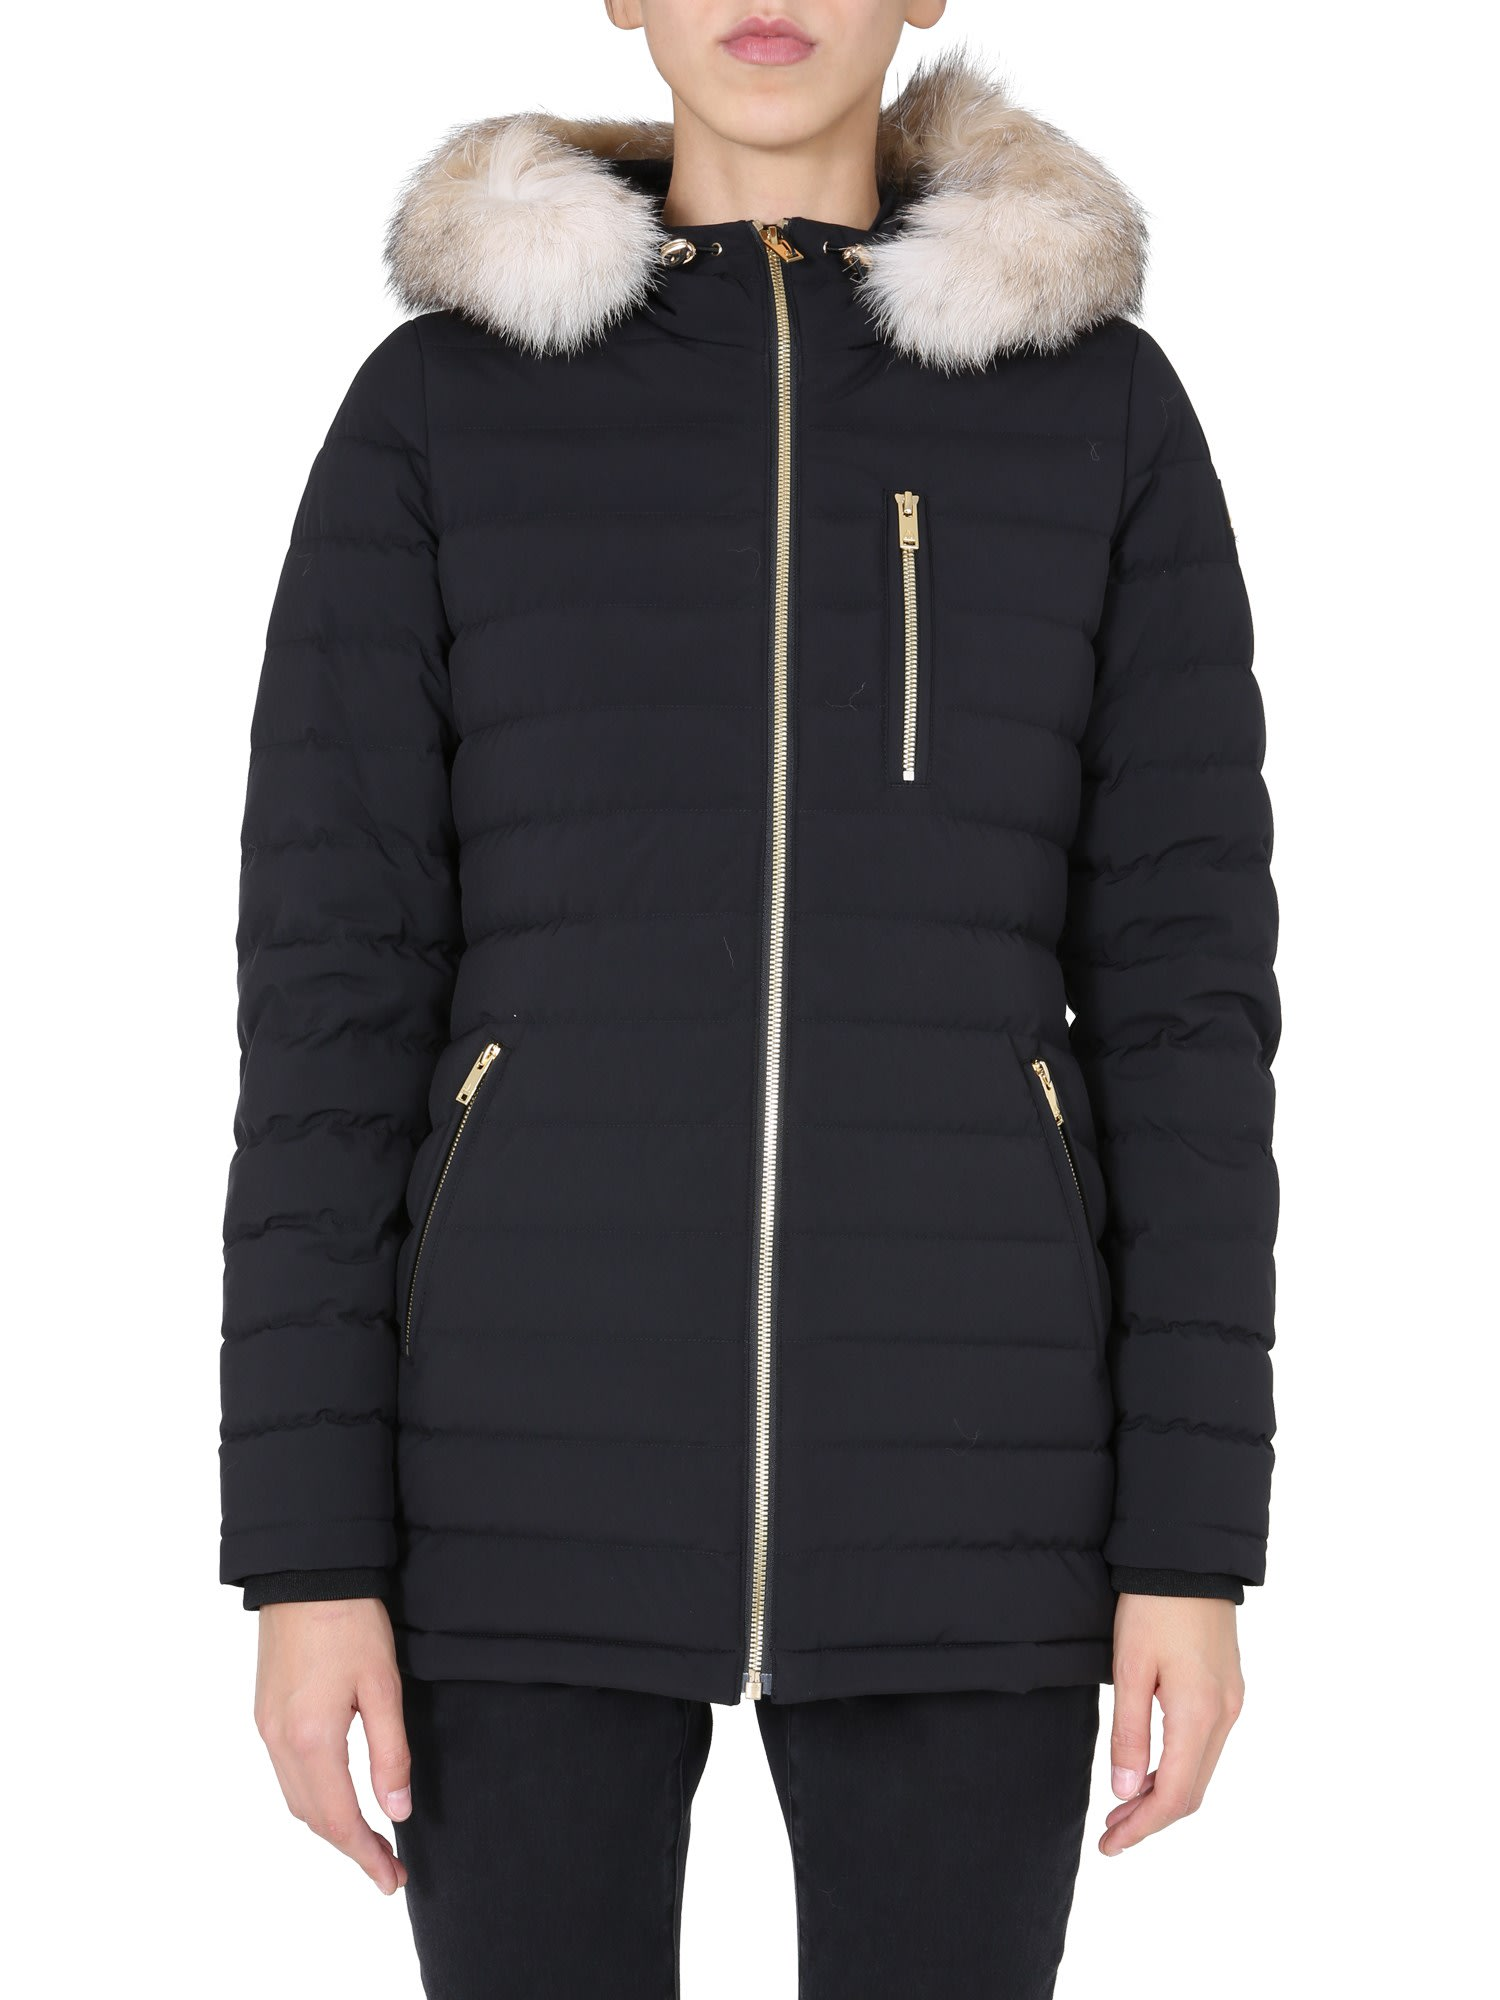 Moose Knuckles ROSELAWN DOWN JACKET